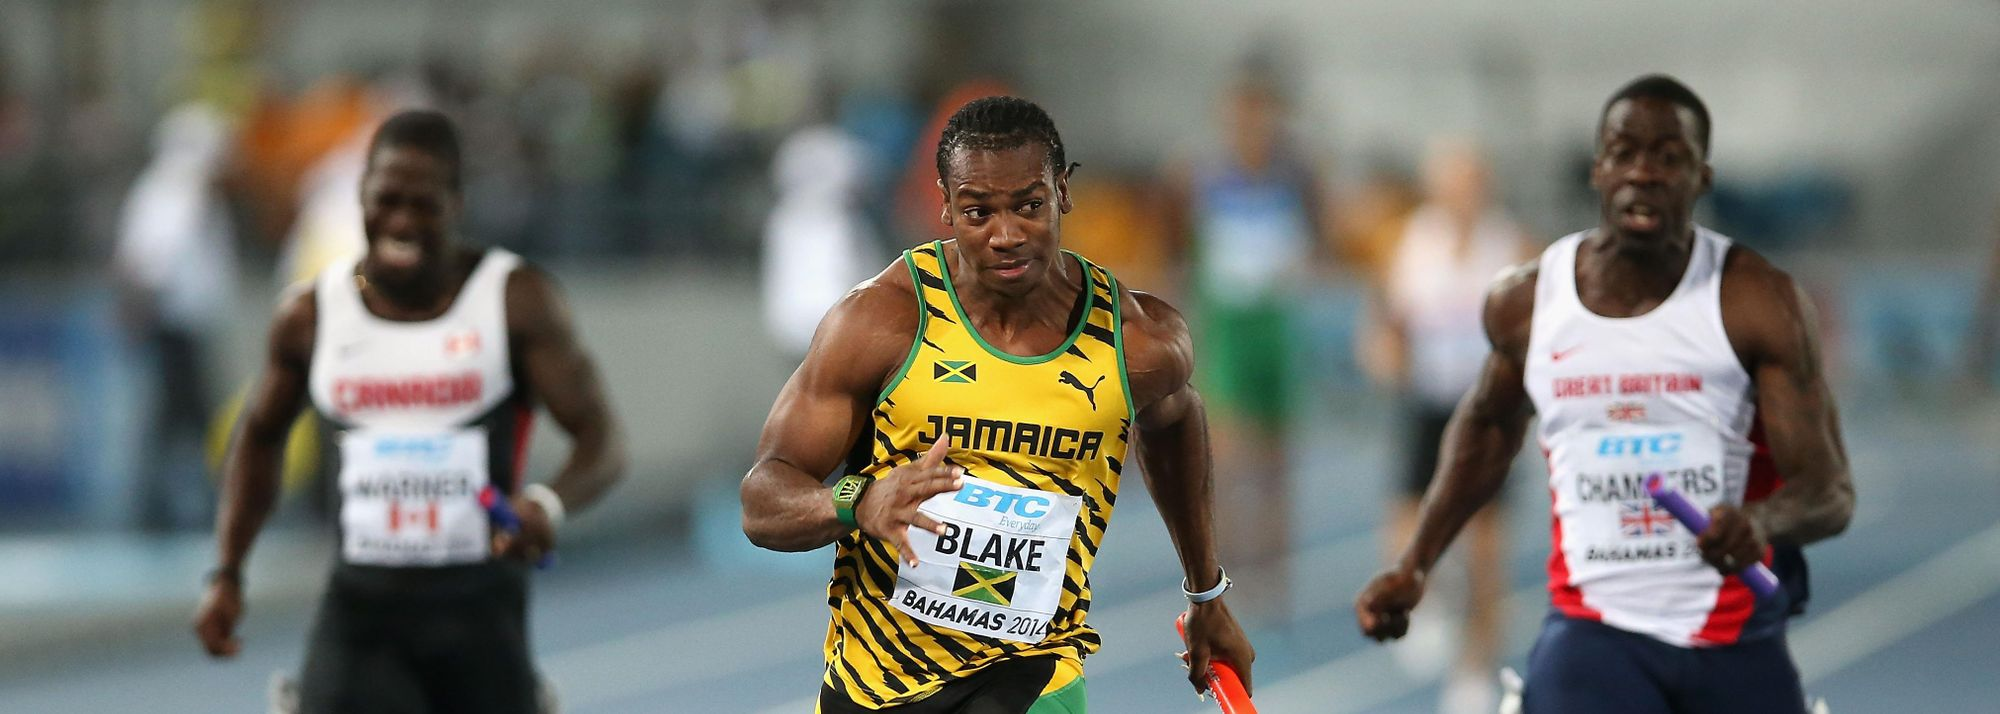 "The men's 4x100m final was Jamaica's to lose, and they managed to avoid that fate with a 37.77 clocking and an authoritative anchor leg from Yohan ""The Beast"" Blake. Blake's closing 100m was clocked in 9.07 with a running start."